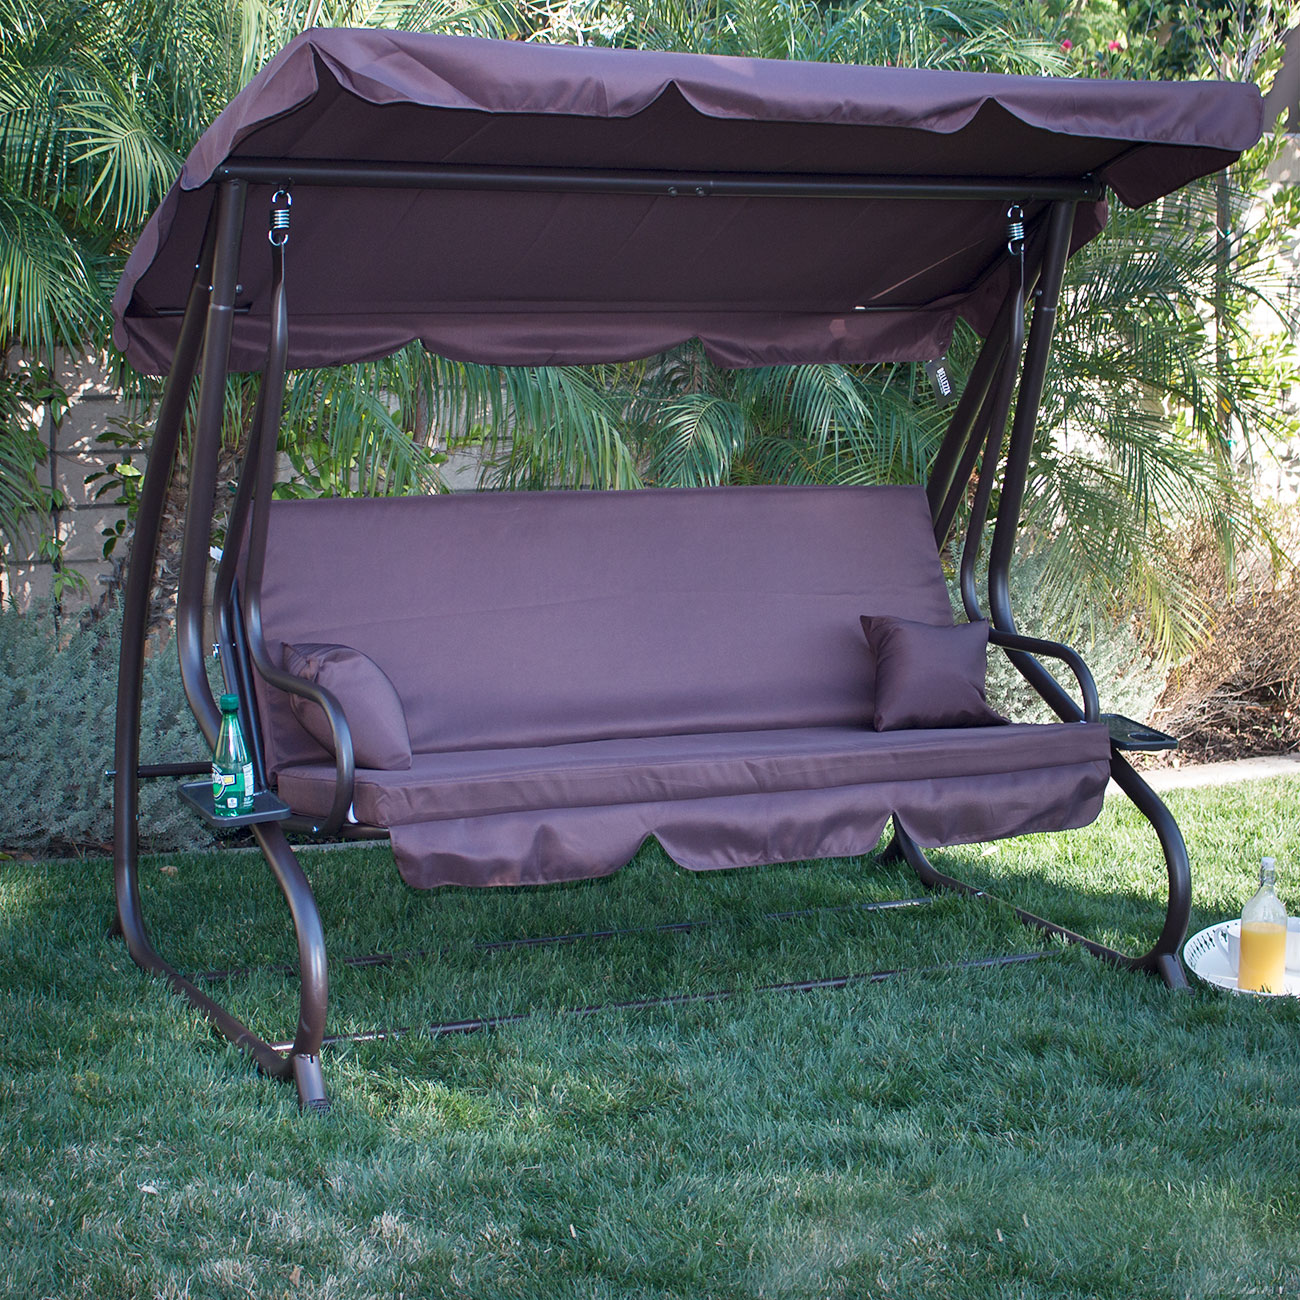 swing chair au can ikea covers be washed 3 person outdoor w canopy seat patio hammock